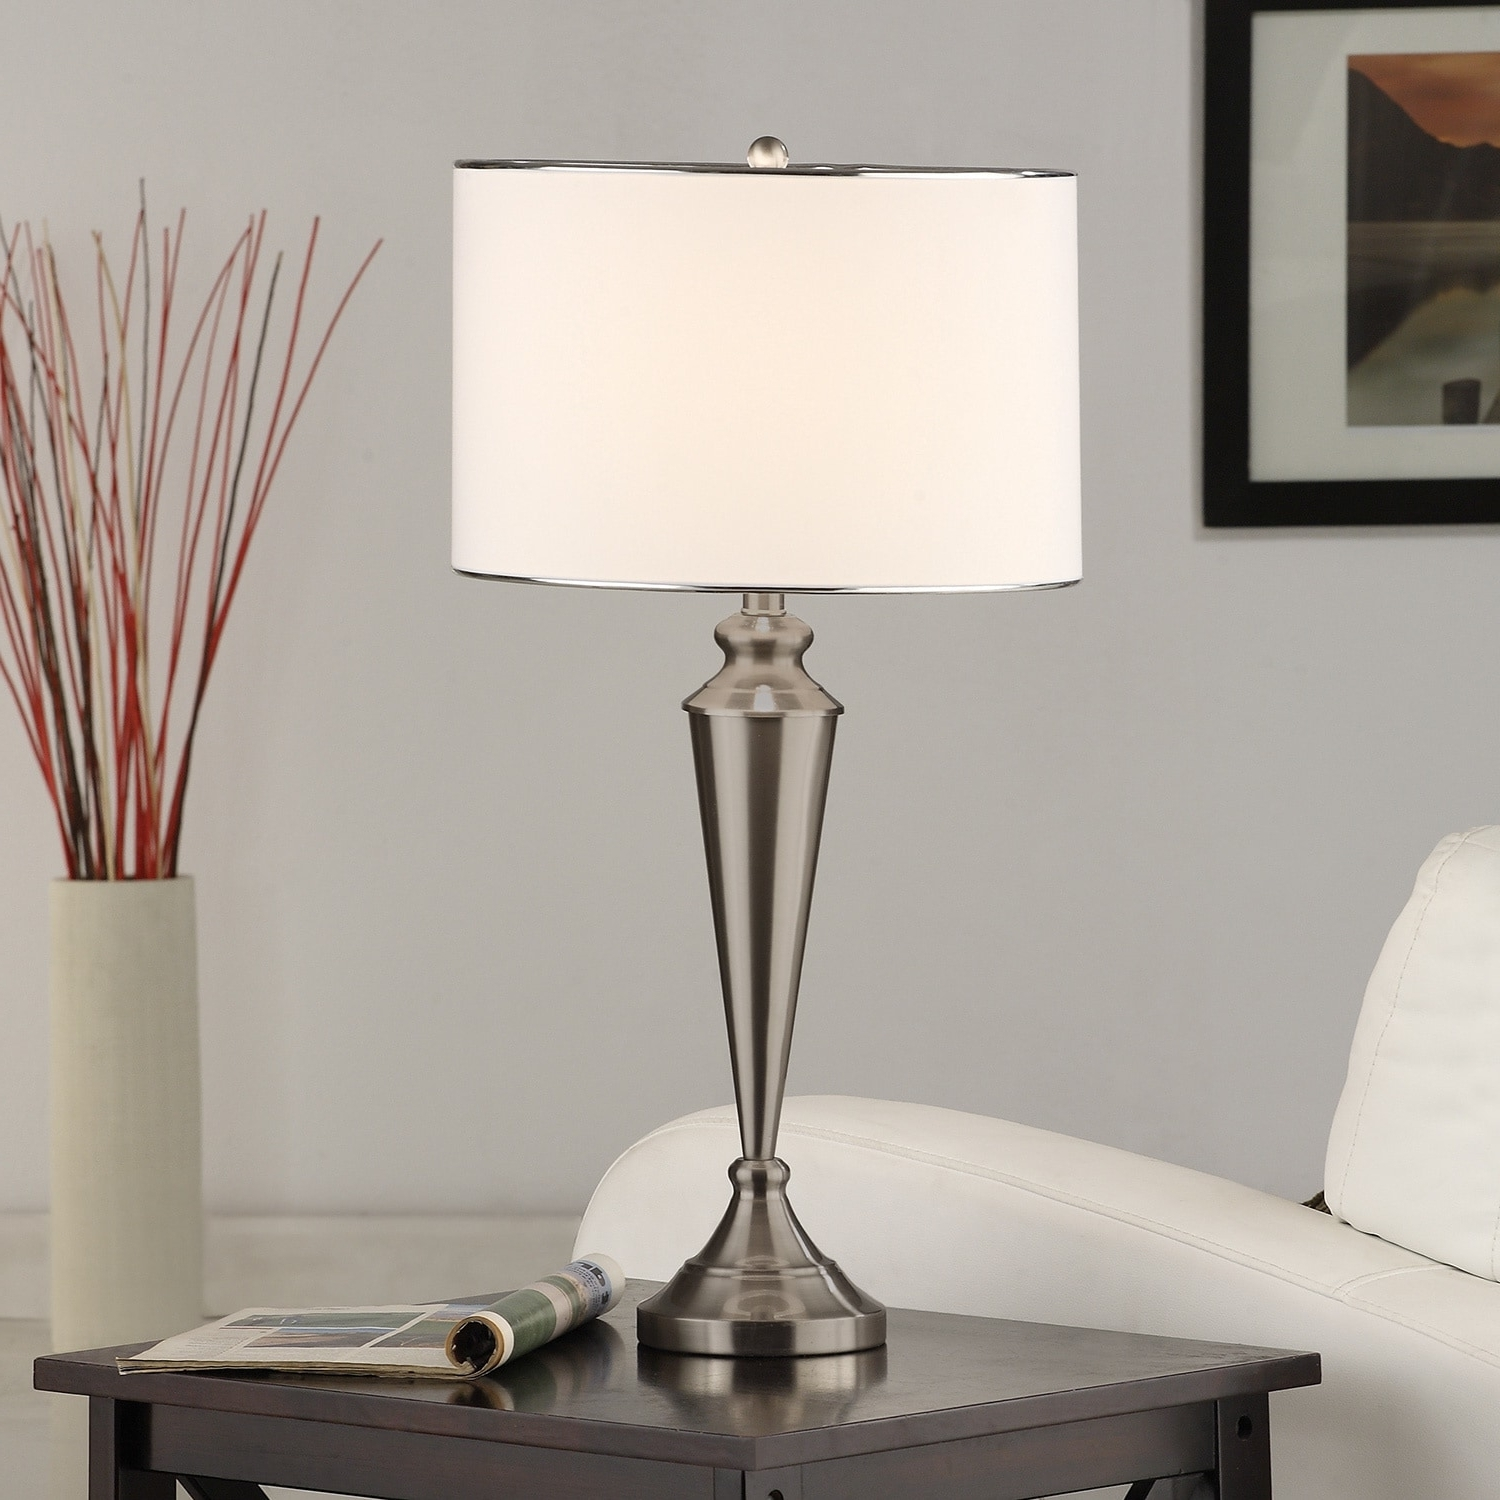 Shop Brushed Nickel Contemporary Table Lamp (Set Of 2) – Free Intended For Most Current Overstock Living Room Table Lamps (View 7 of 15)